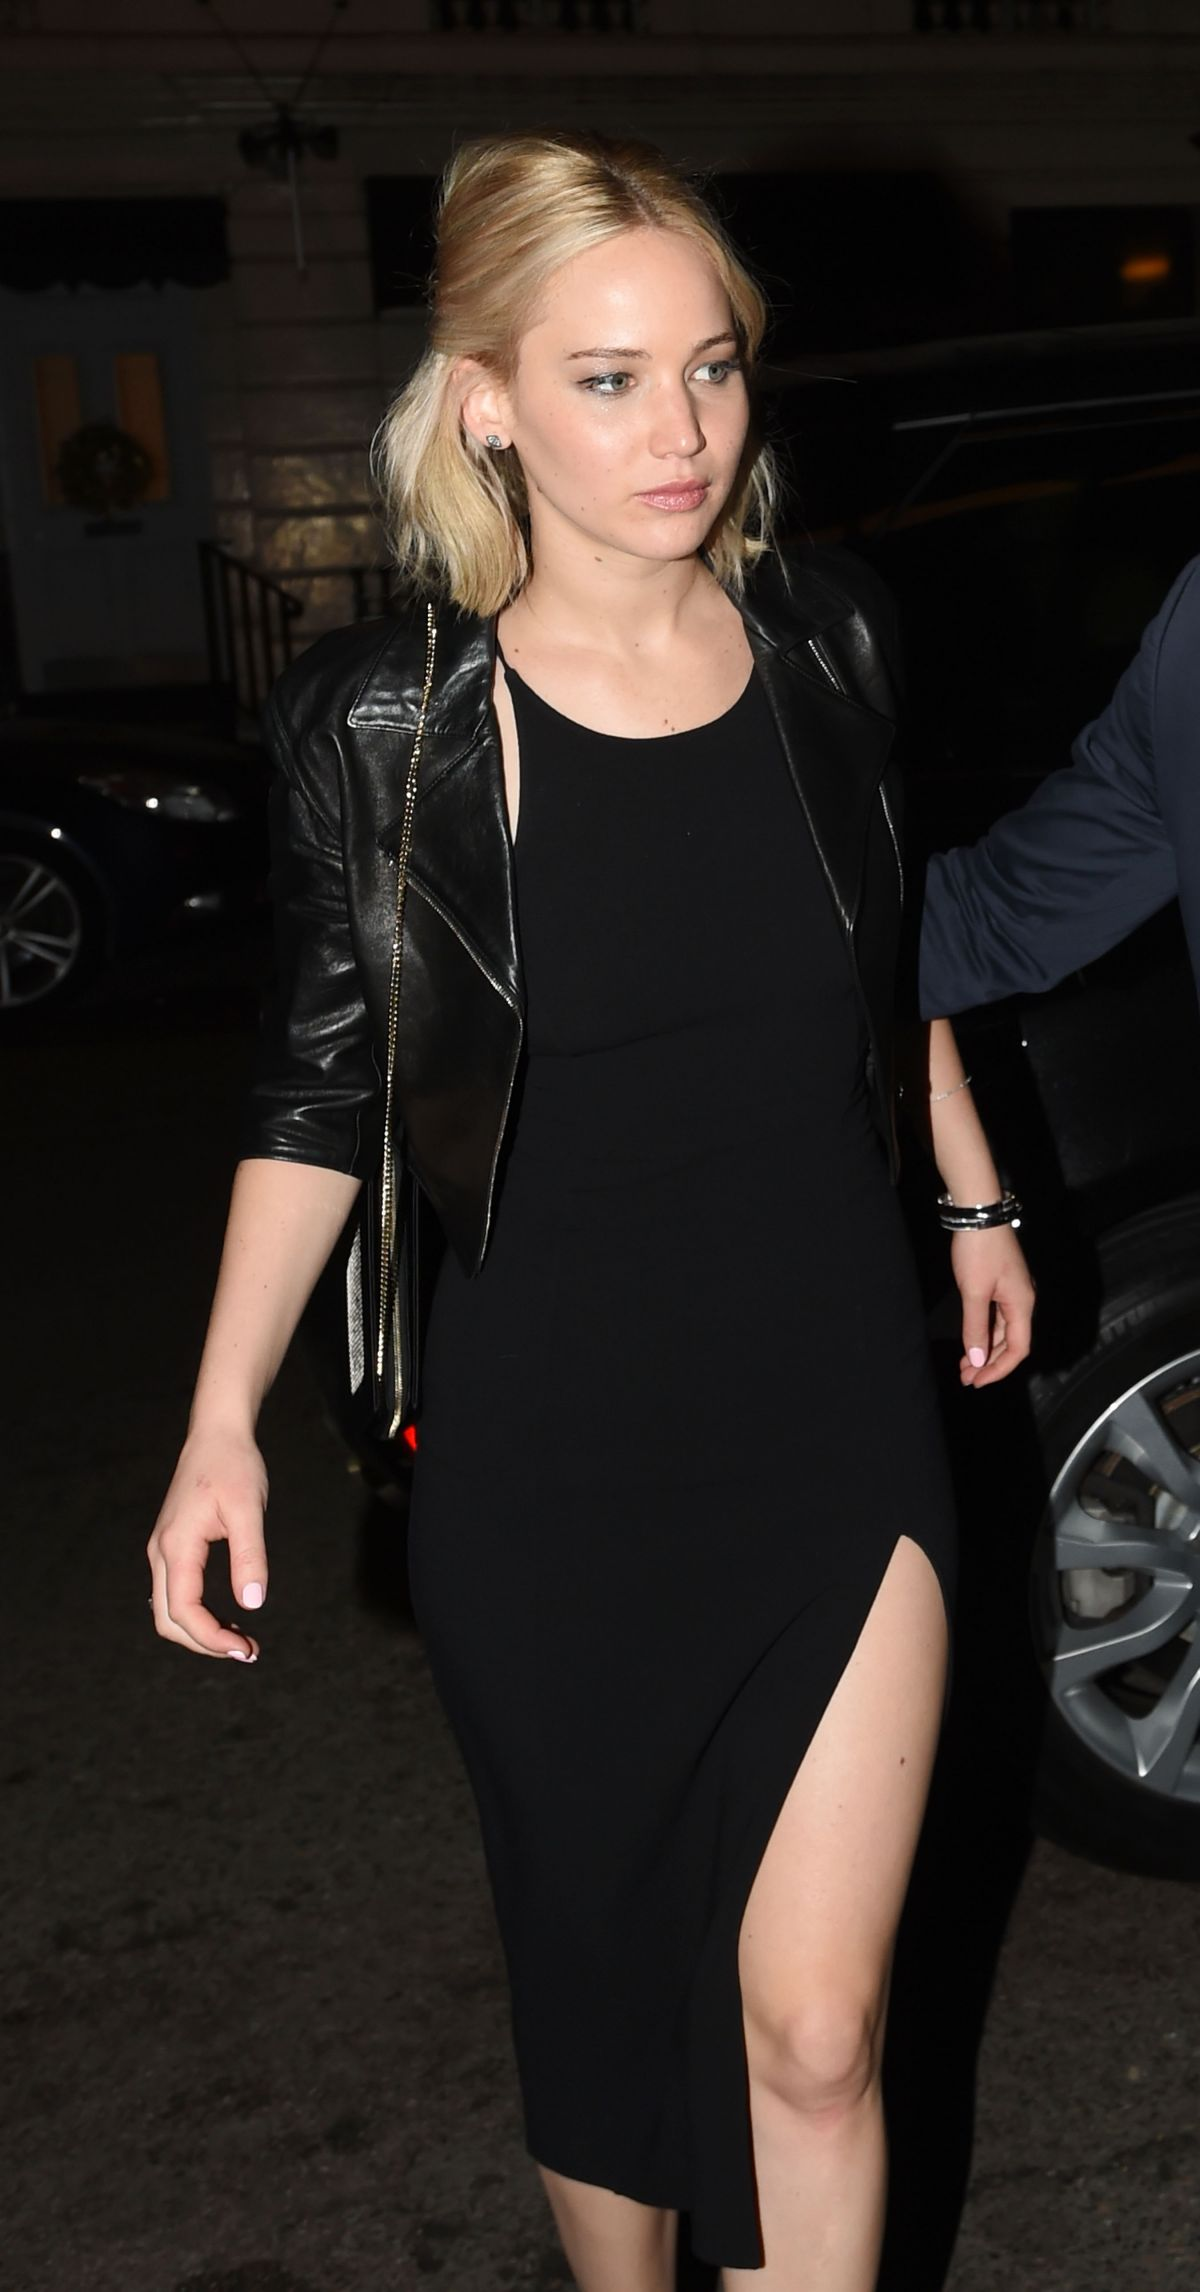 JENNIFER LAWRENCE Leaves Chiltern Firehouse in London 12/17/2015